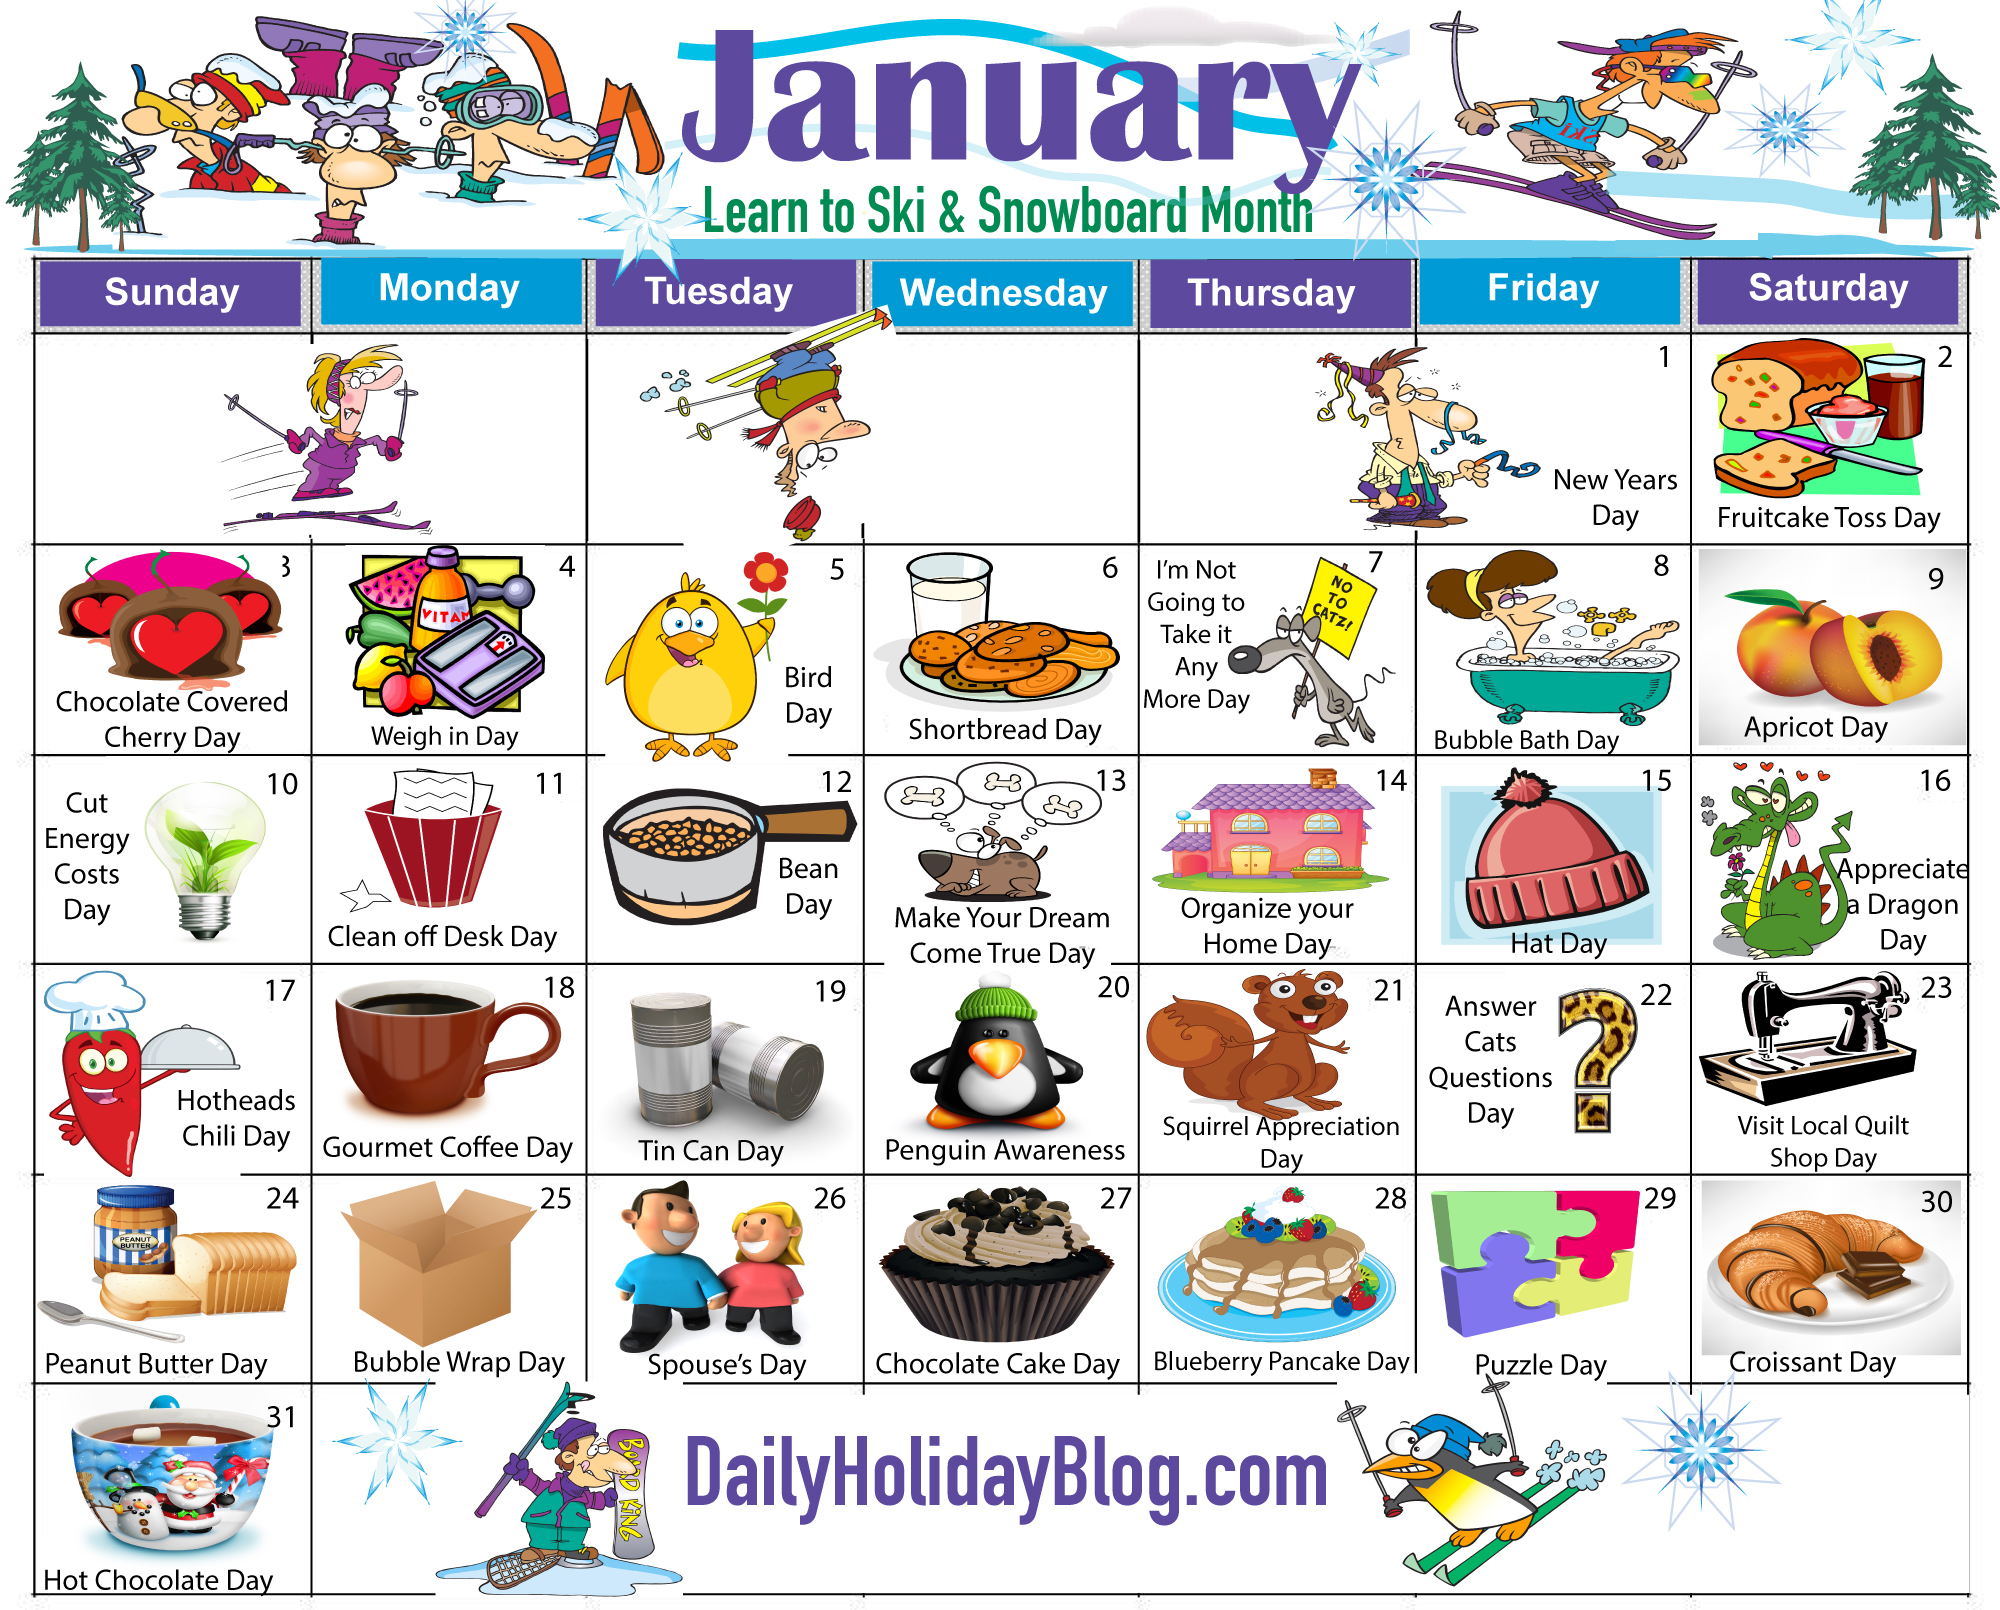 January holidays calendar clipart svg black and white library 1000+ images about Calendar - January on Pinterest | Clip art ... svg black and white library